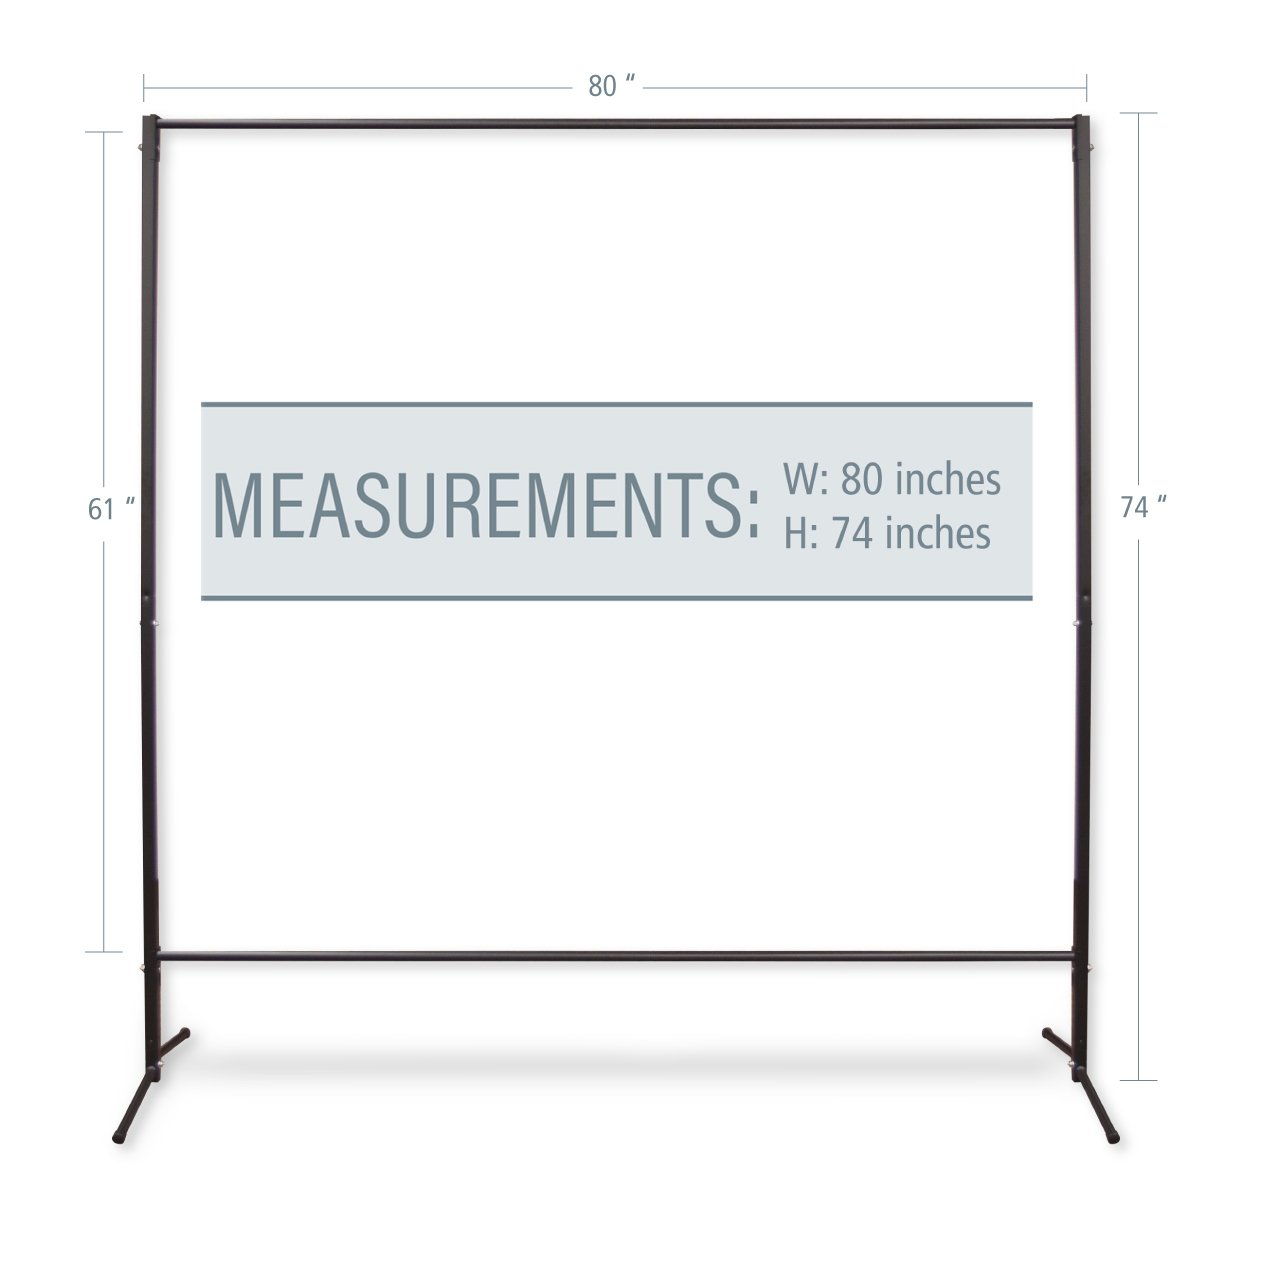 A&F Rod Décor - Multi-Purpose Portable Rod Stand/Office Partitions/Portable Wall/Space Divider/Free Standing Room Divider 74'' tall, 80'' wide (1 piece)